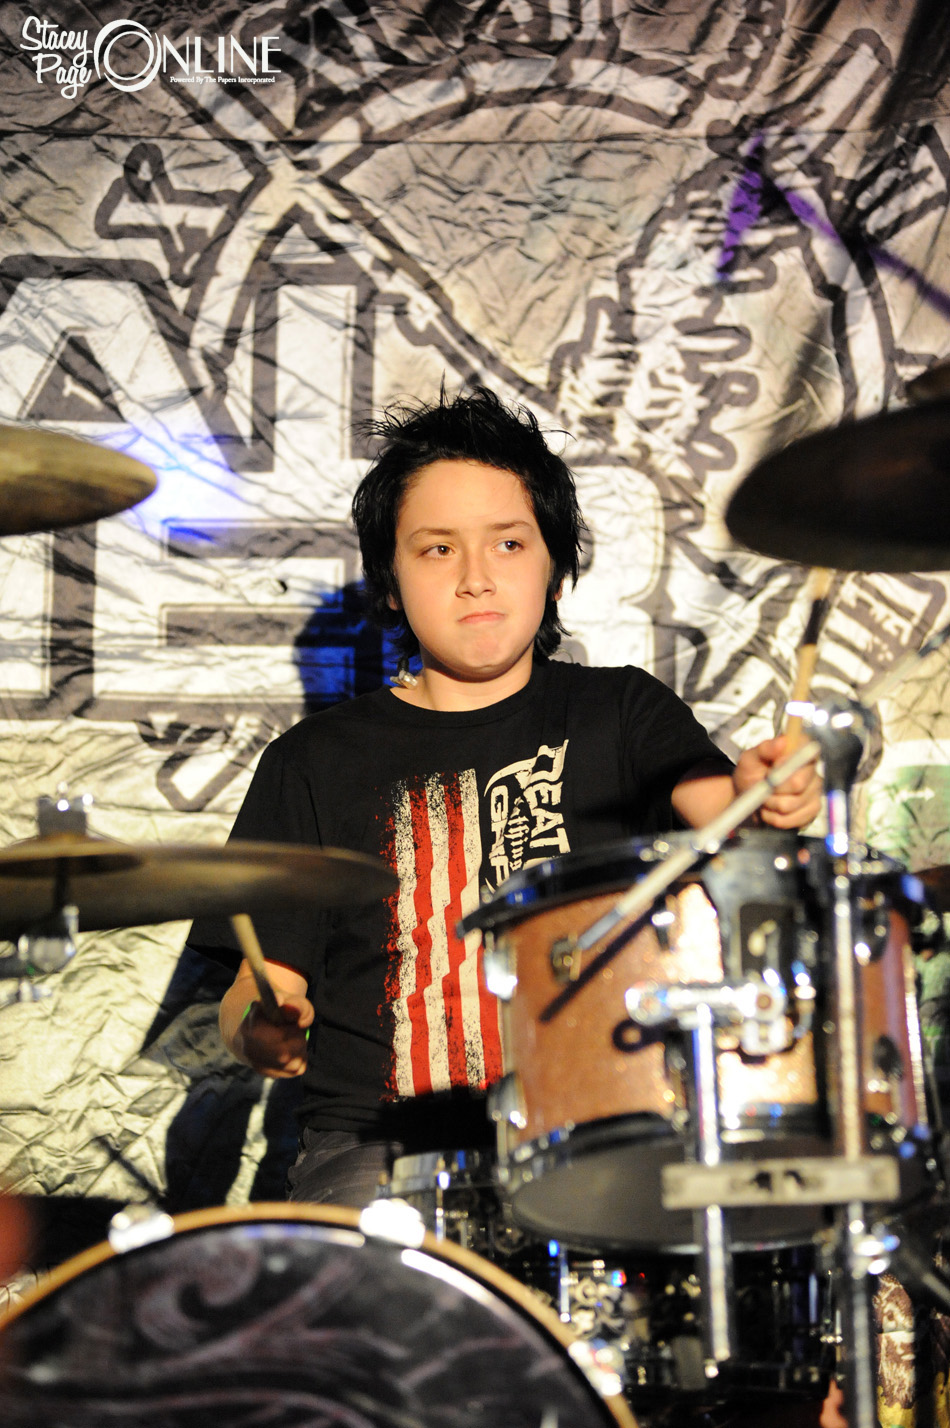 Austin Rios, 12, guest starred on the skins for several shows on the Digital Summer tour.